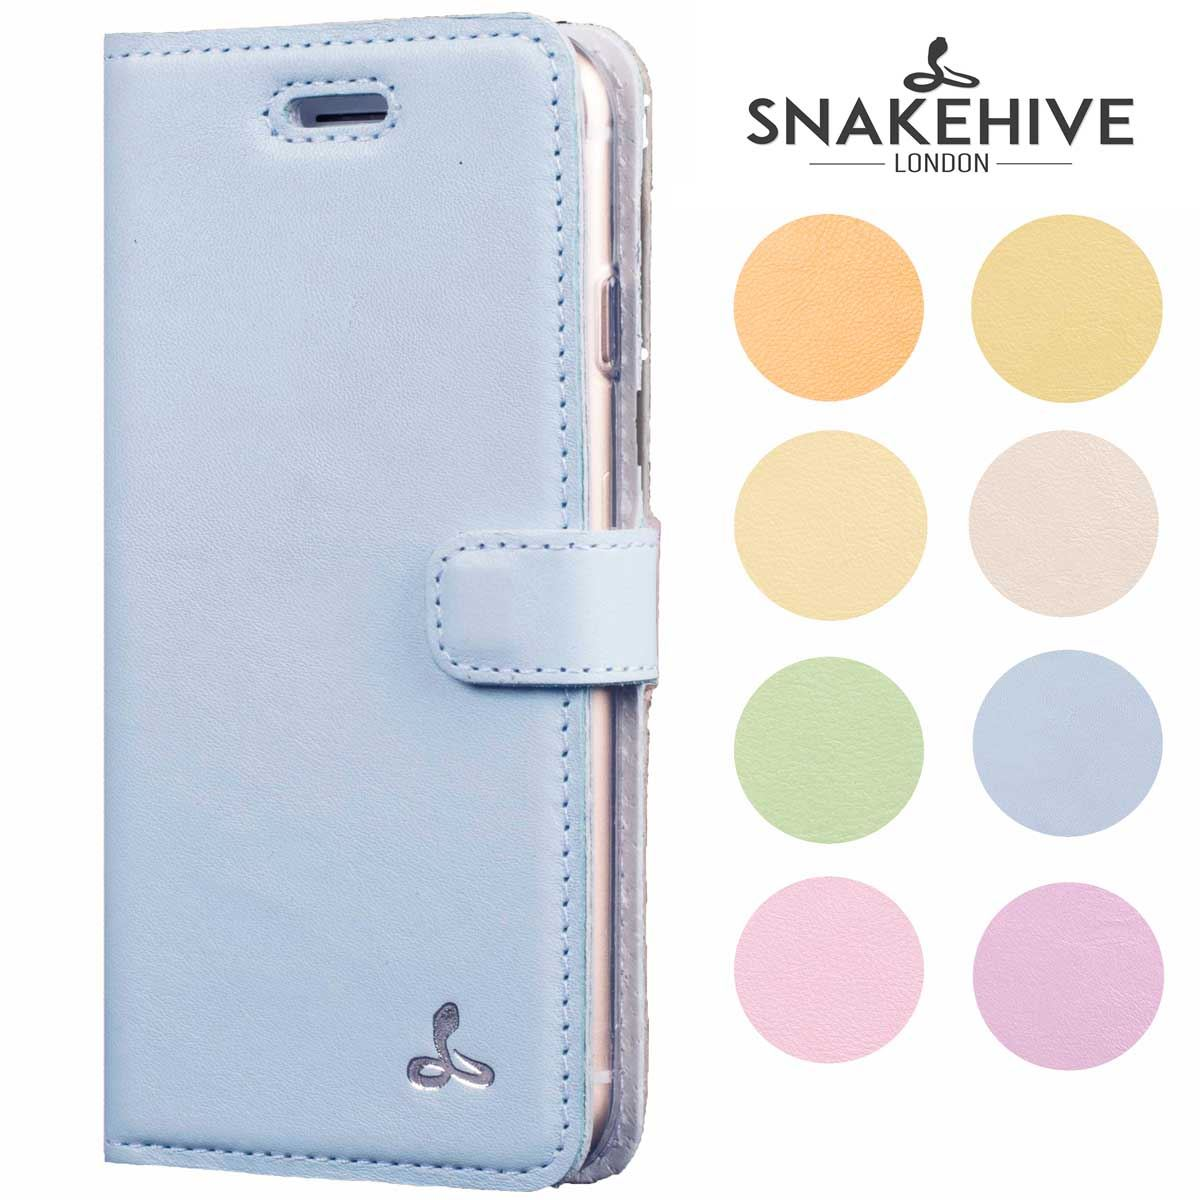 uk availability b106f fed50 Details about Snakehive Apple iPhone 8 Plus Premium Pastel Colour Leather  Phone Wallet Case